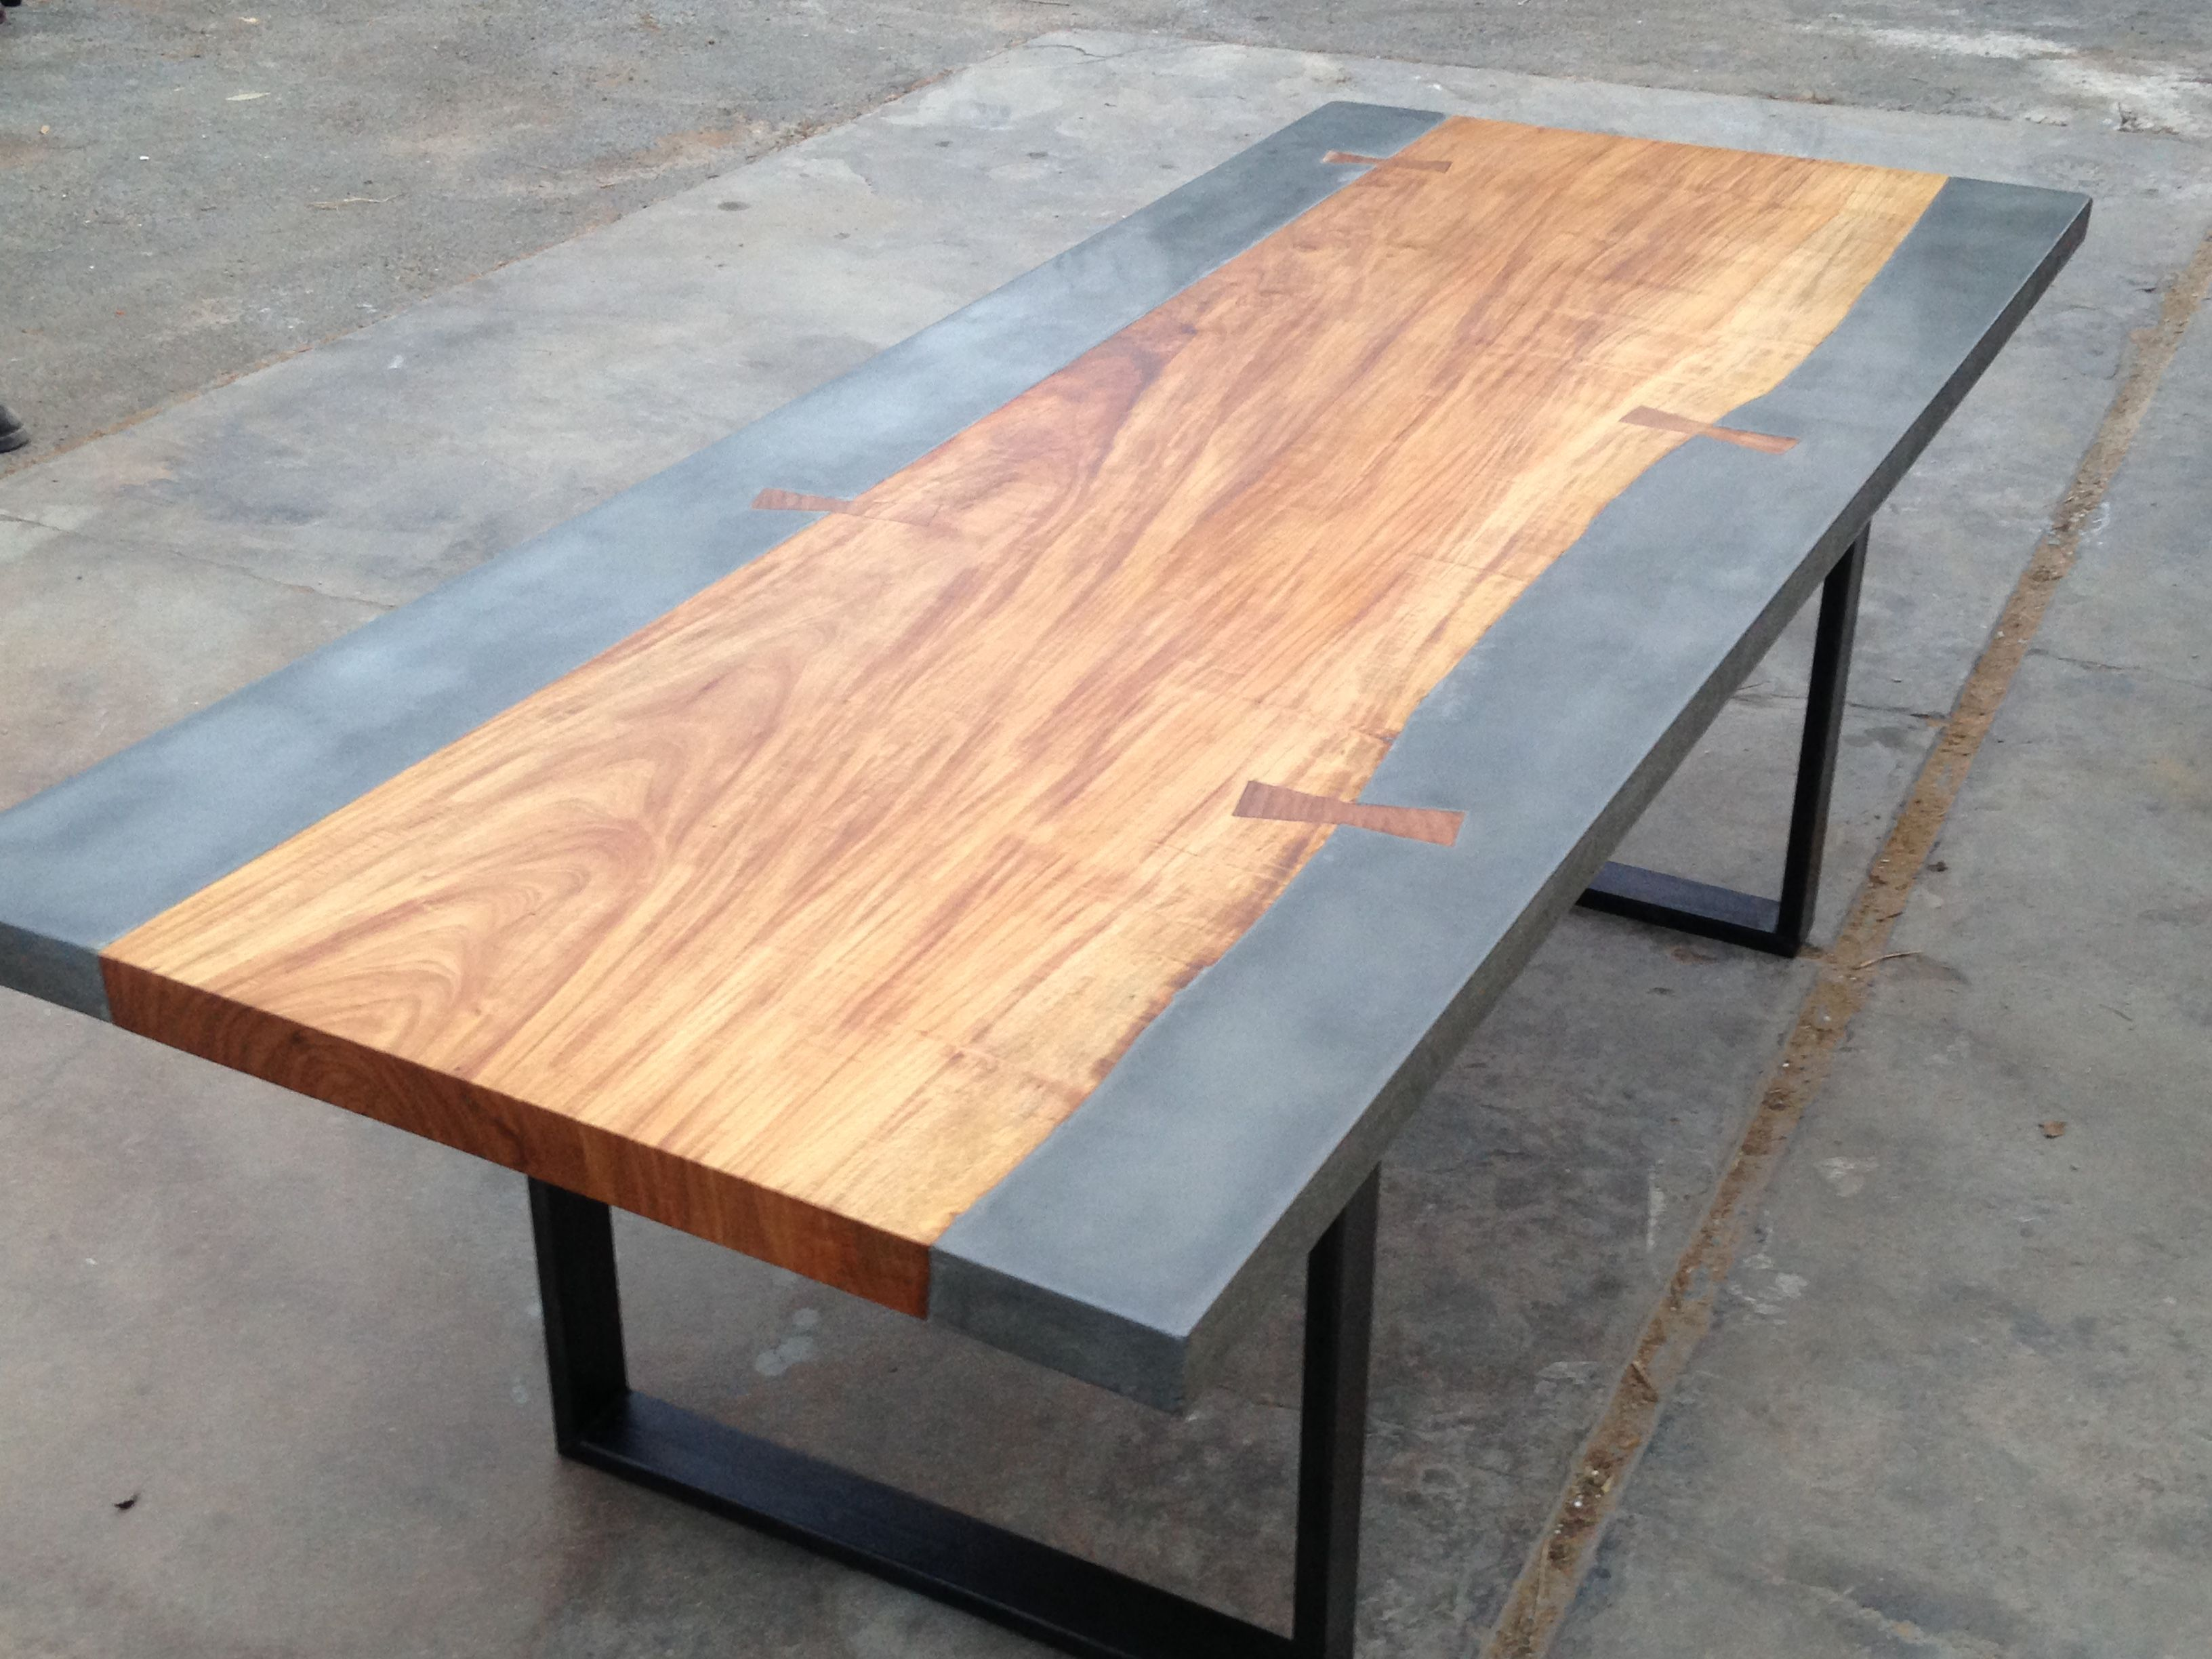 concrete and wood furniture. Custom Made Concrete And Exotic Wood Dining/ Conference Table Furniture C